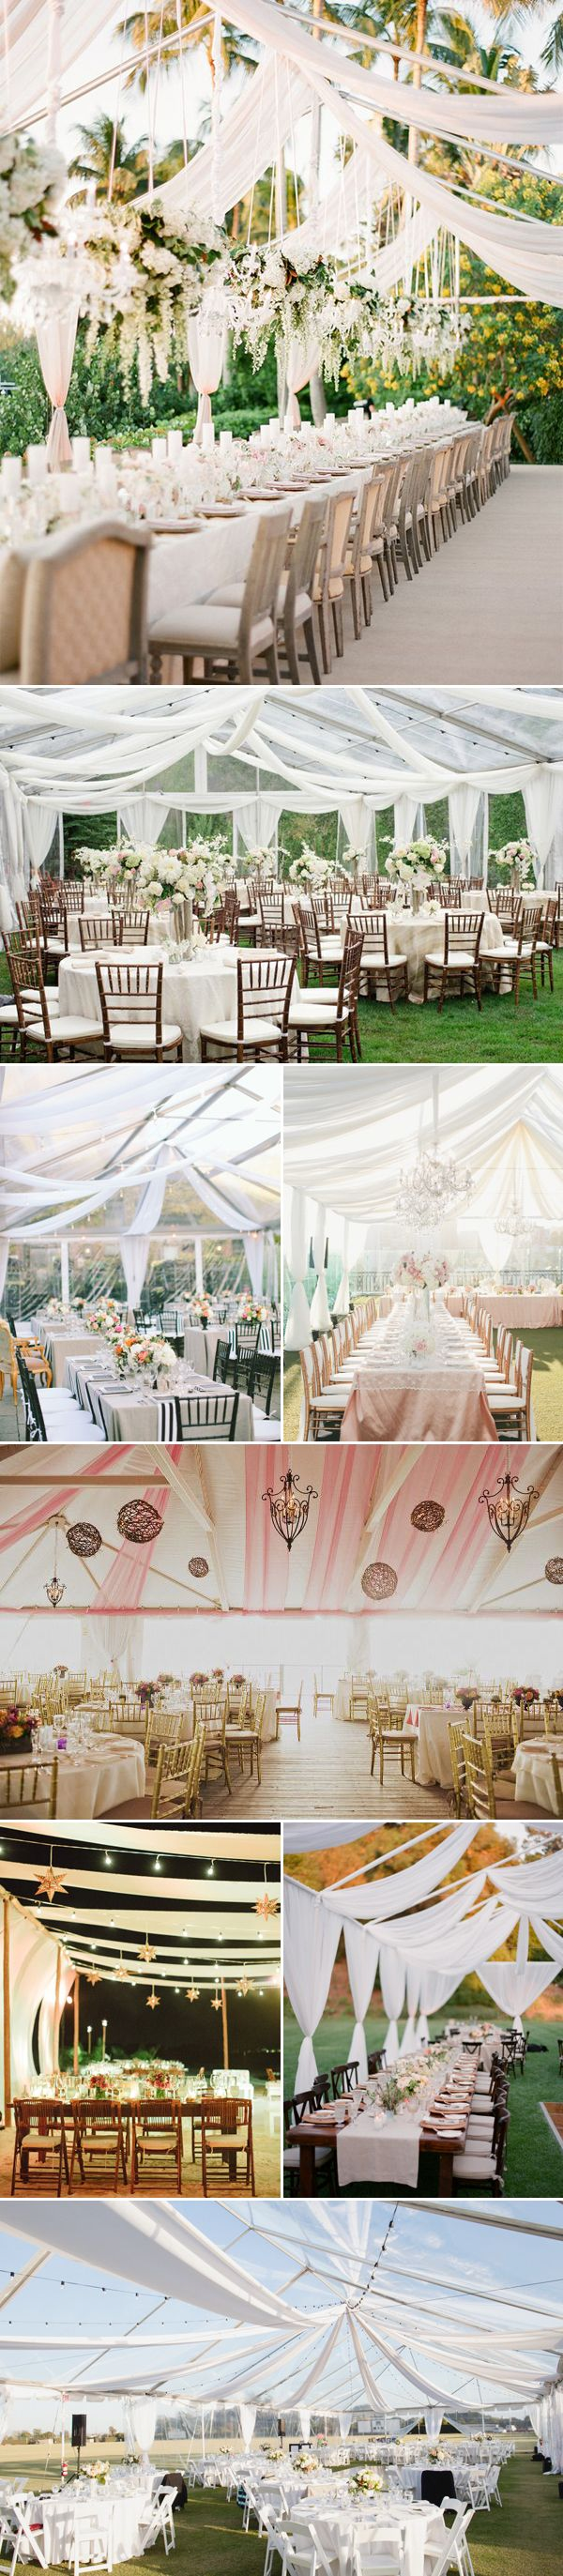 Wedding decorations inside church  Rain or Shine the Wedding is On  Beautiful Ways to Decorate Your